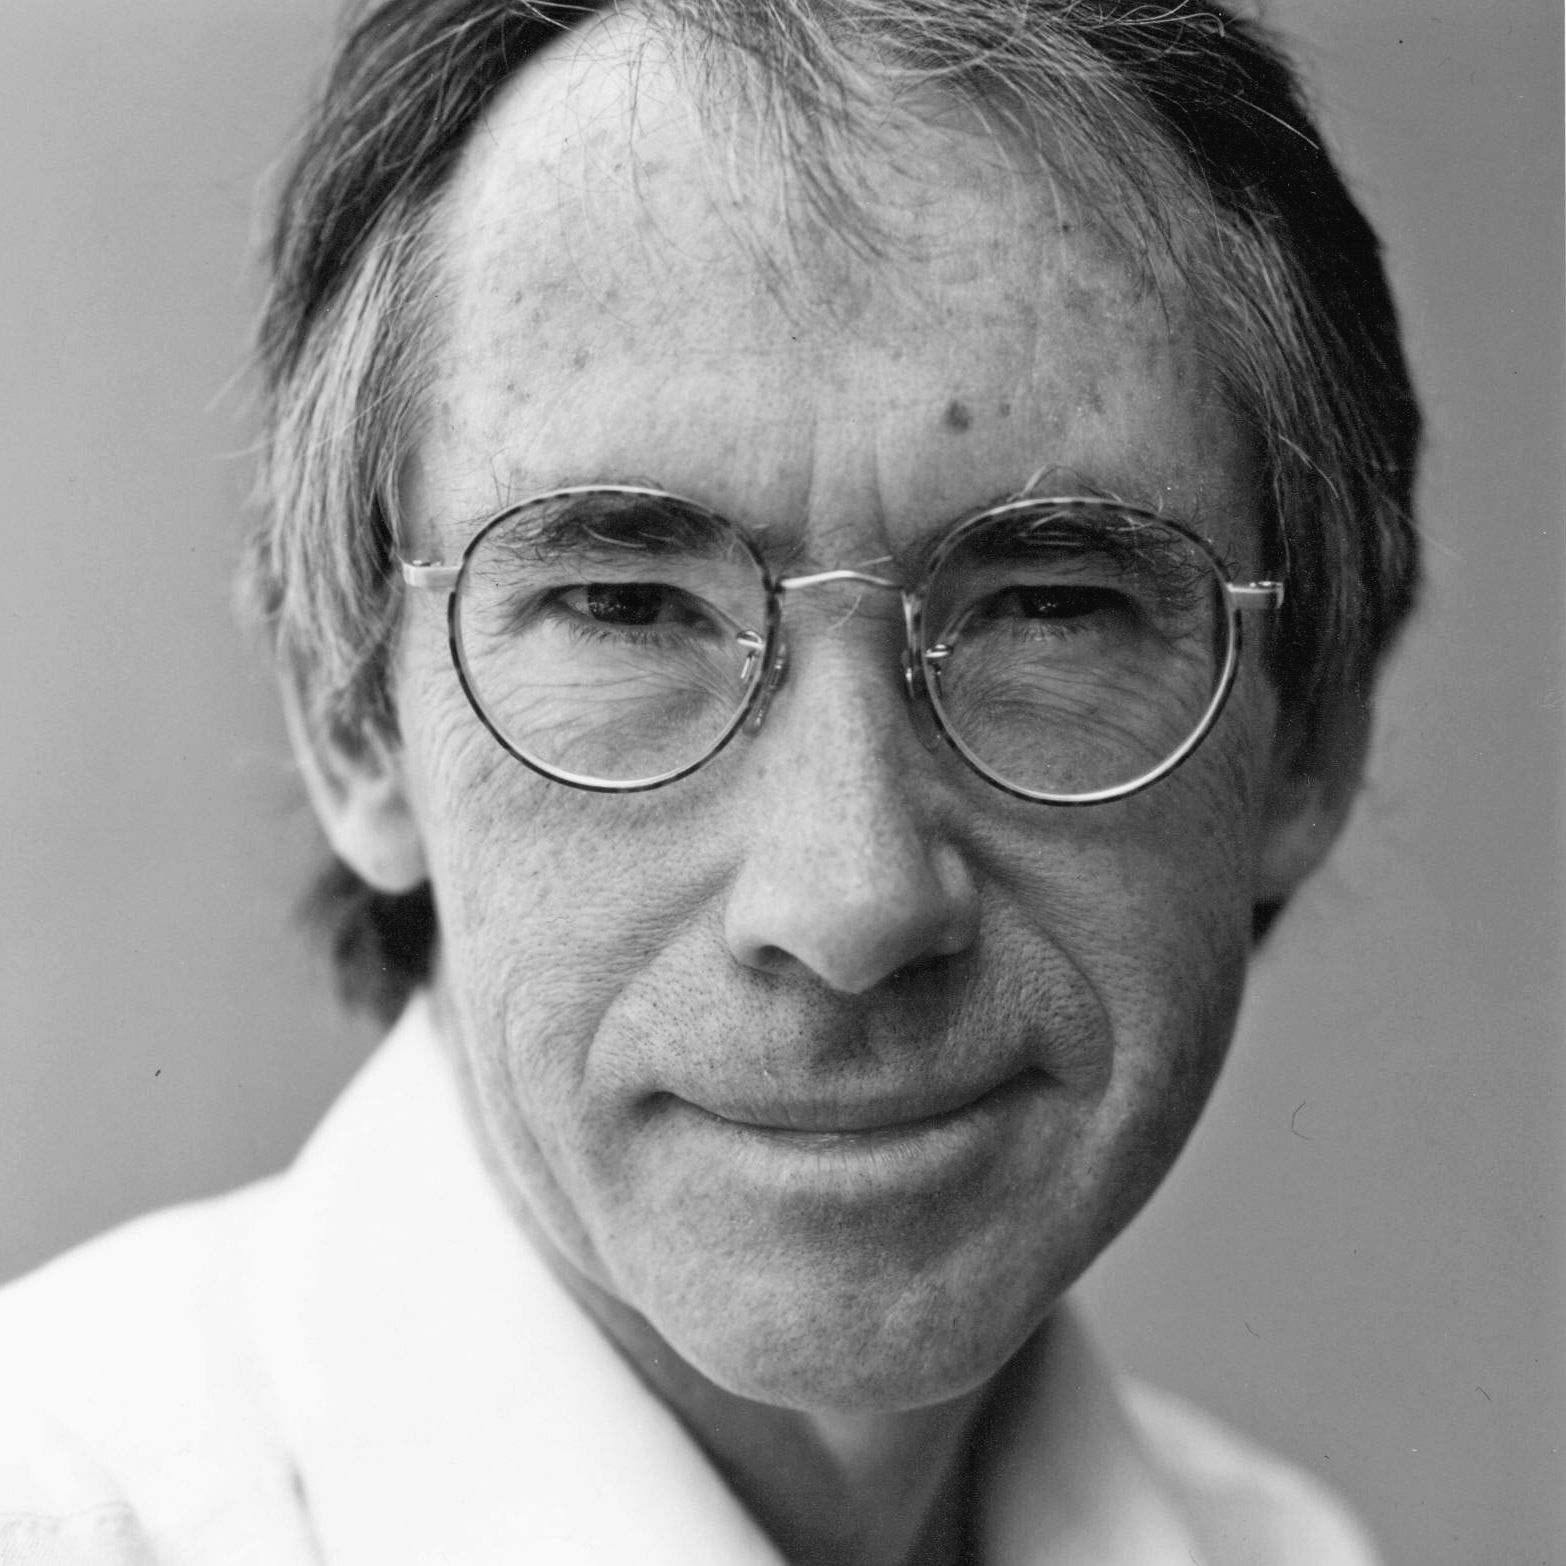 Ian McEwan's other books include Solar, For You and On Chesil Beach.